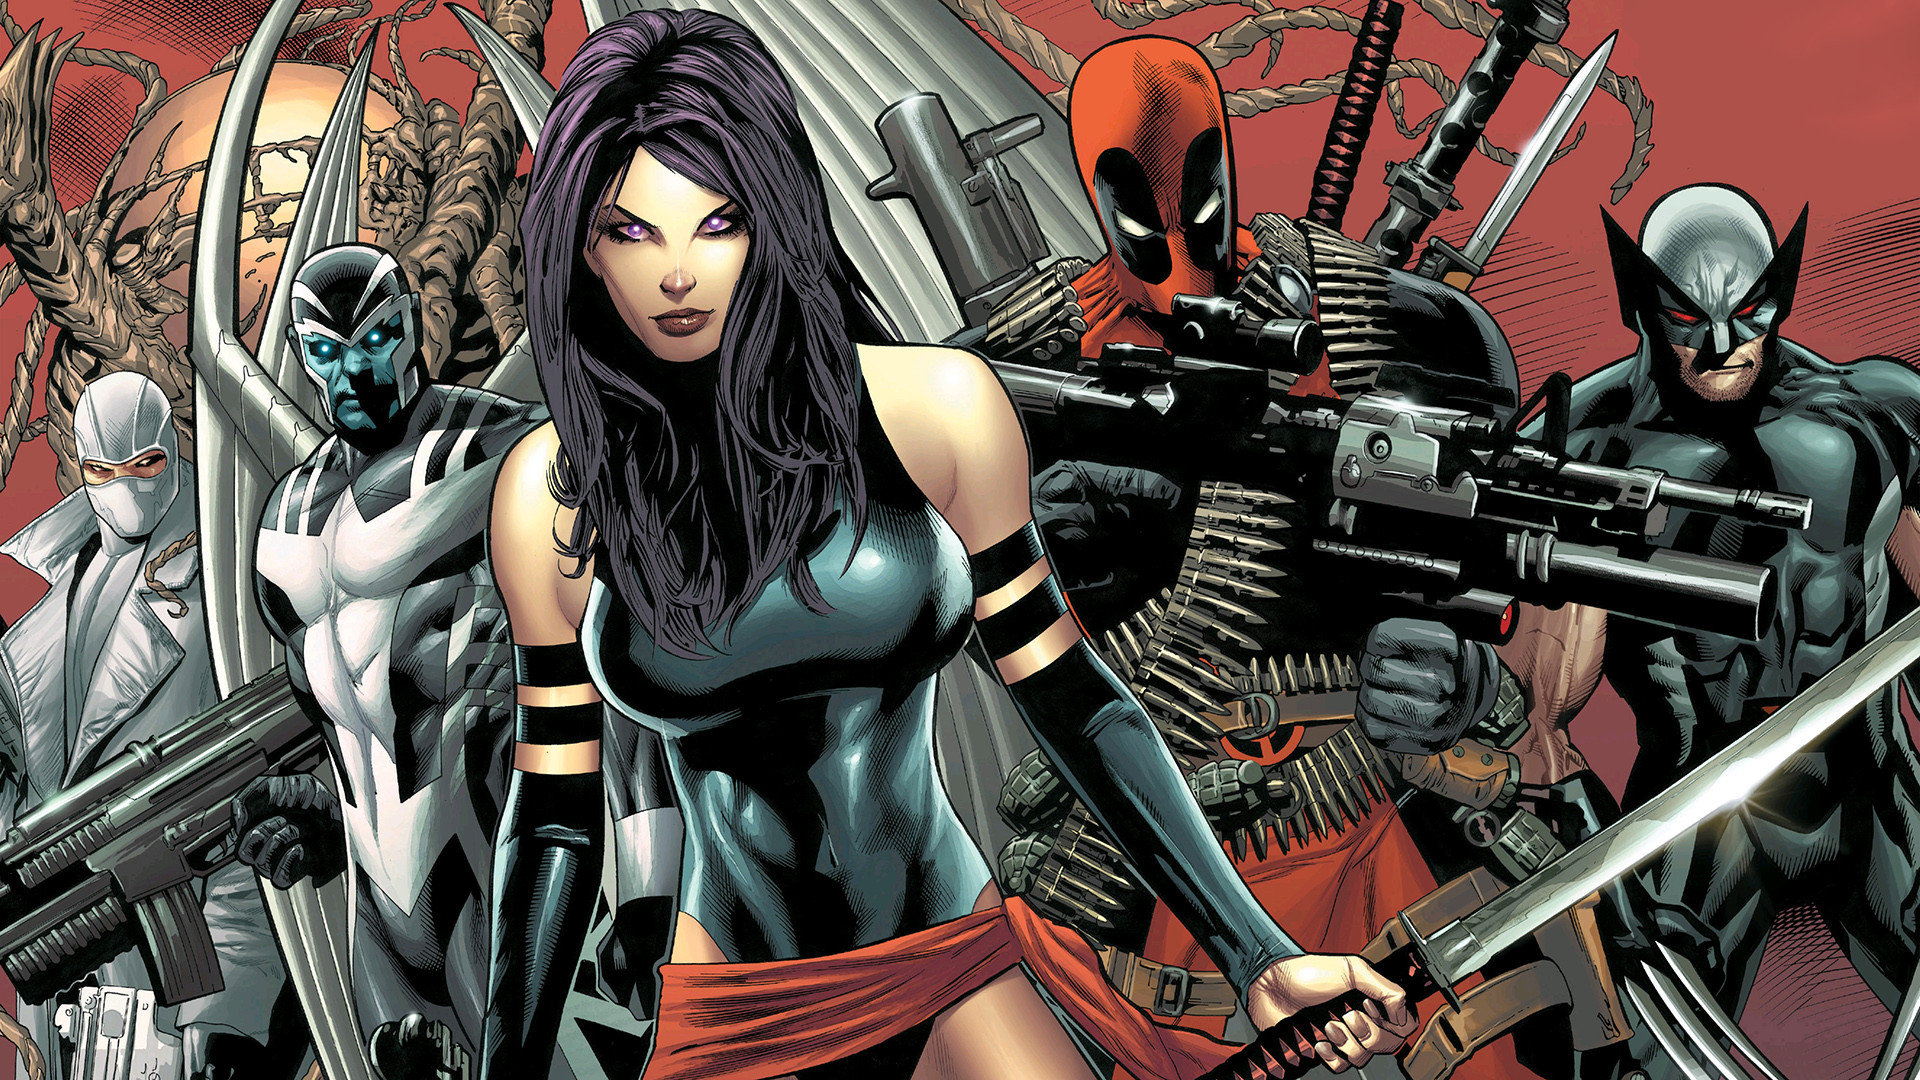 Download Full Hd X Force Desktop Wallpaper Id438864 For Free